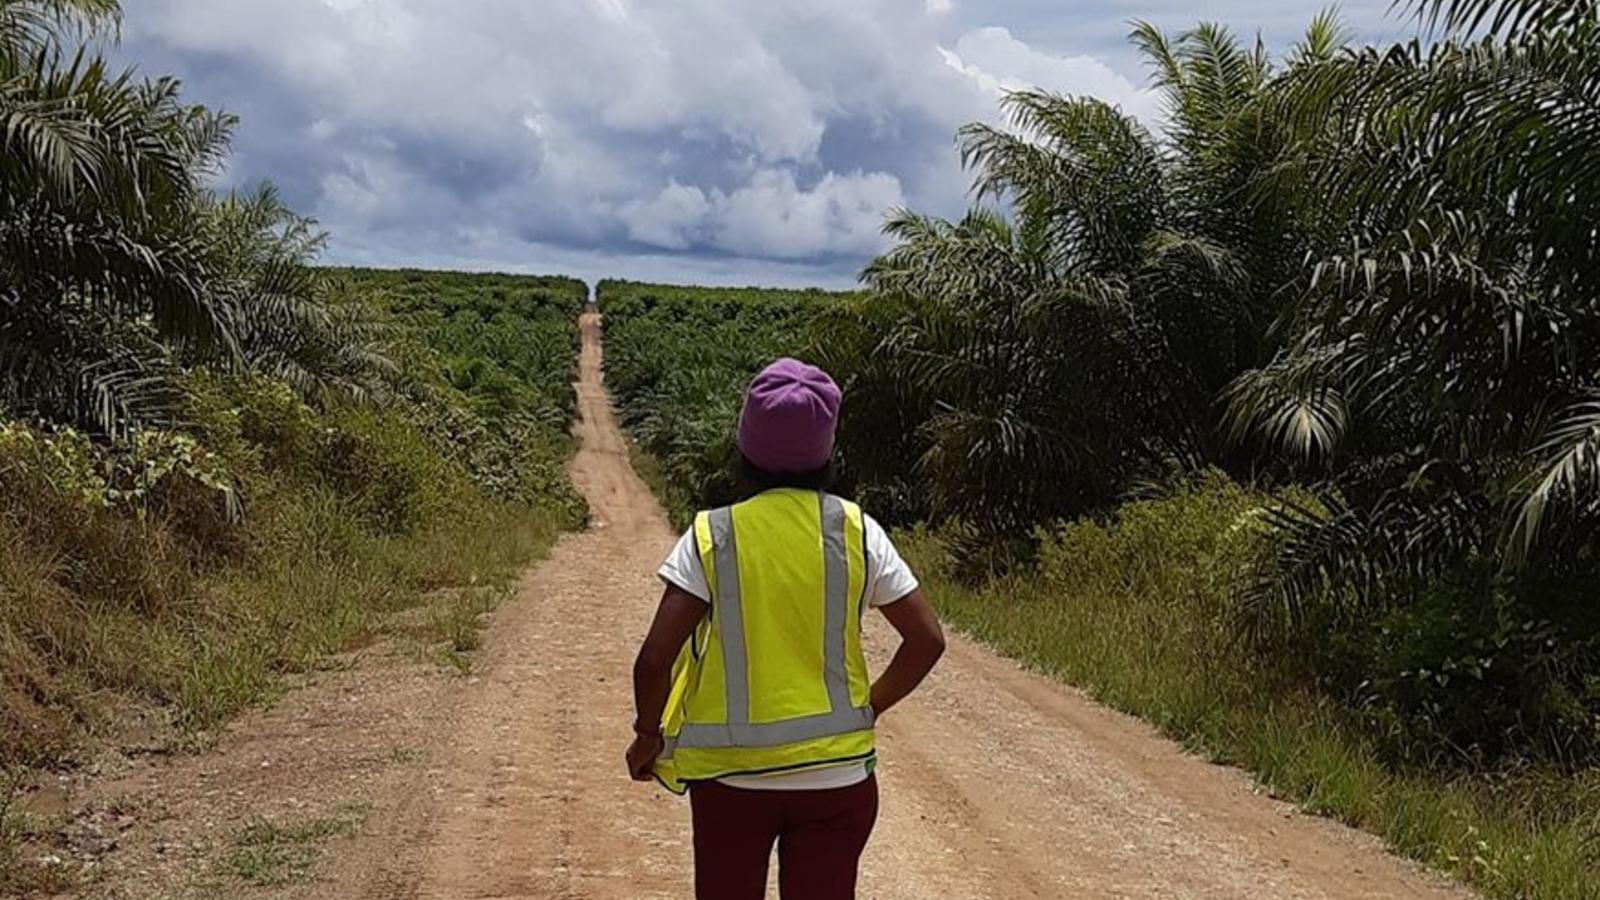 The long road ahead to rural areas of PNG